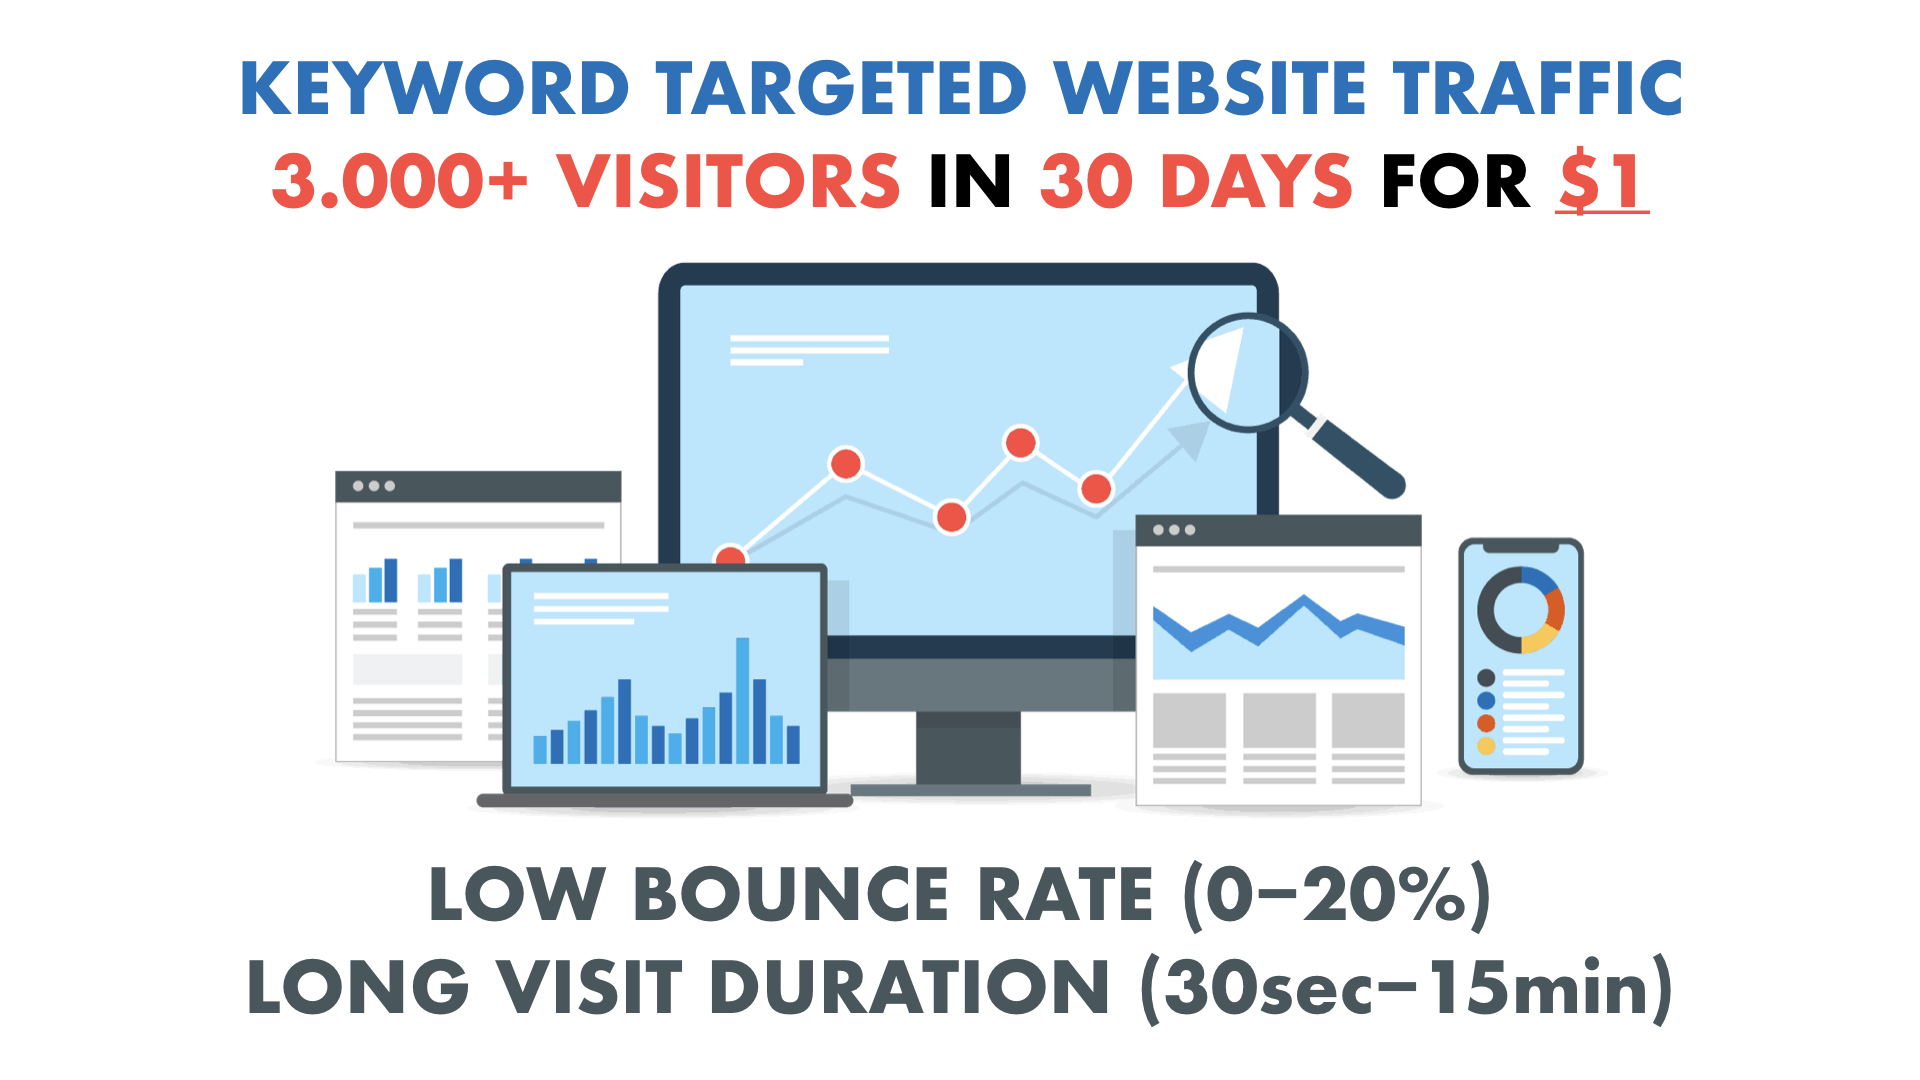 KEYWORD TARGETED Website Traffic with Low Bounce Rate and Long Visit Duration for 30 days